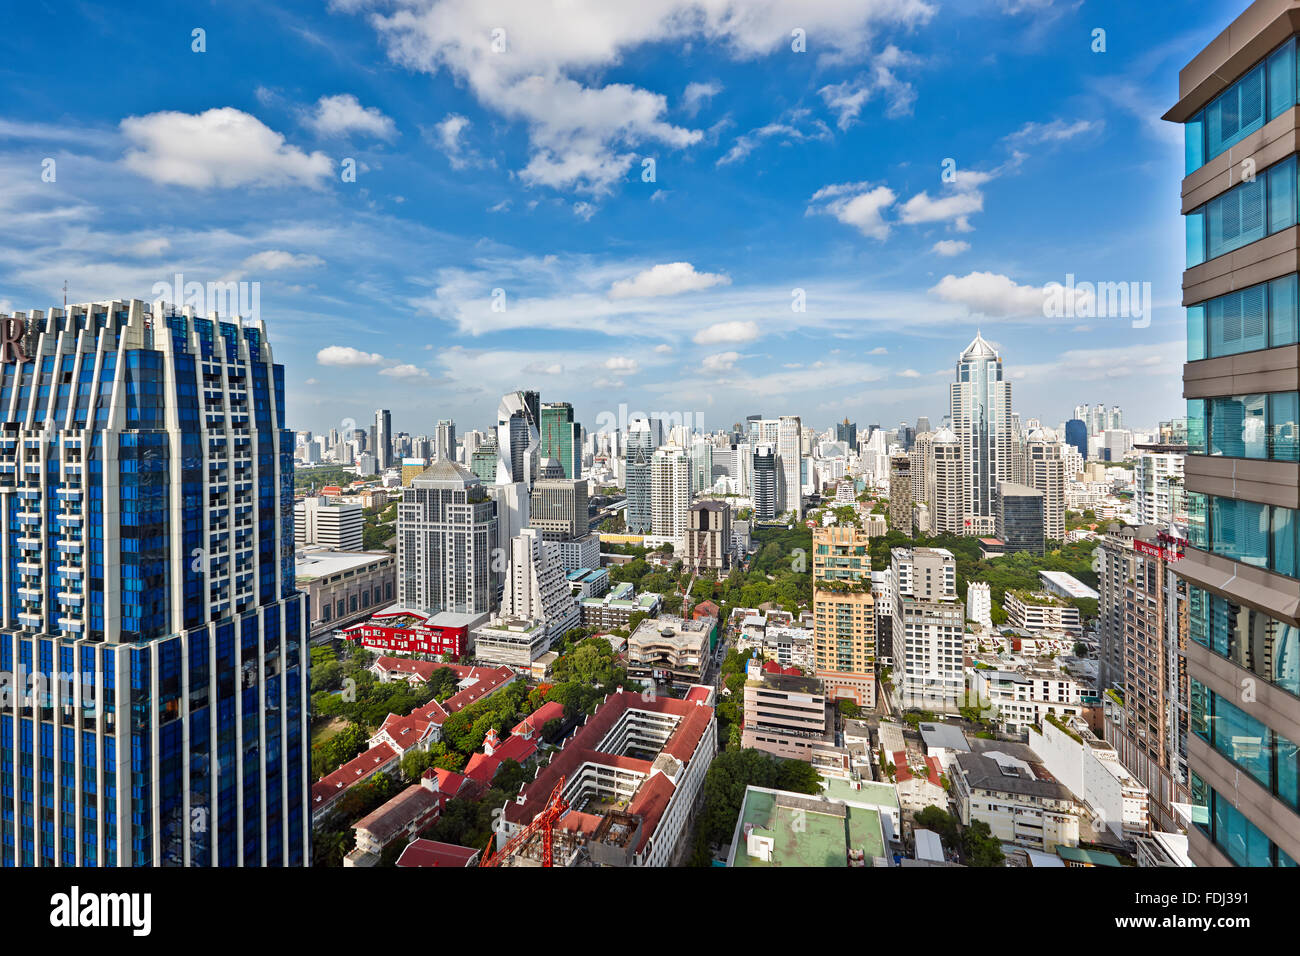 Elevated city view. Bangkok, Thailand. - Stock Image